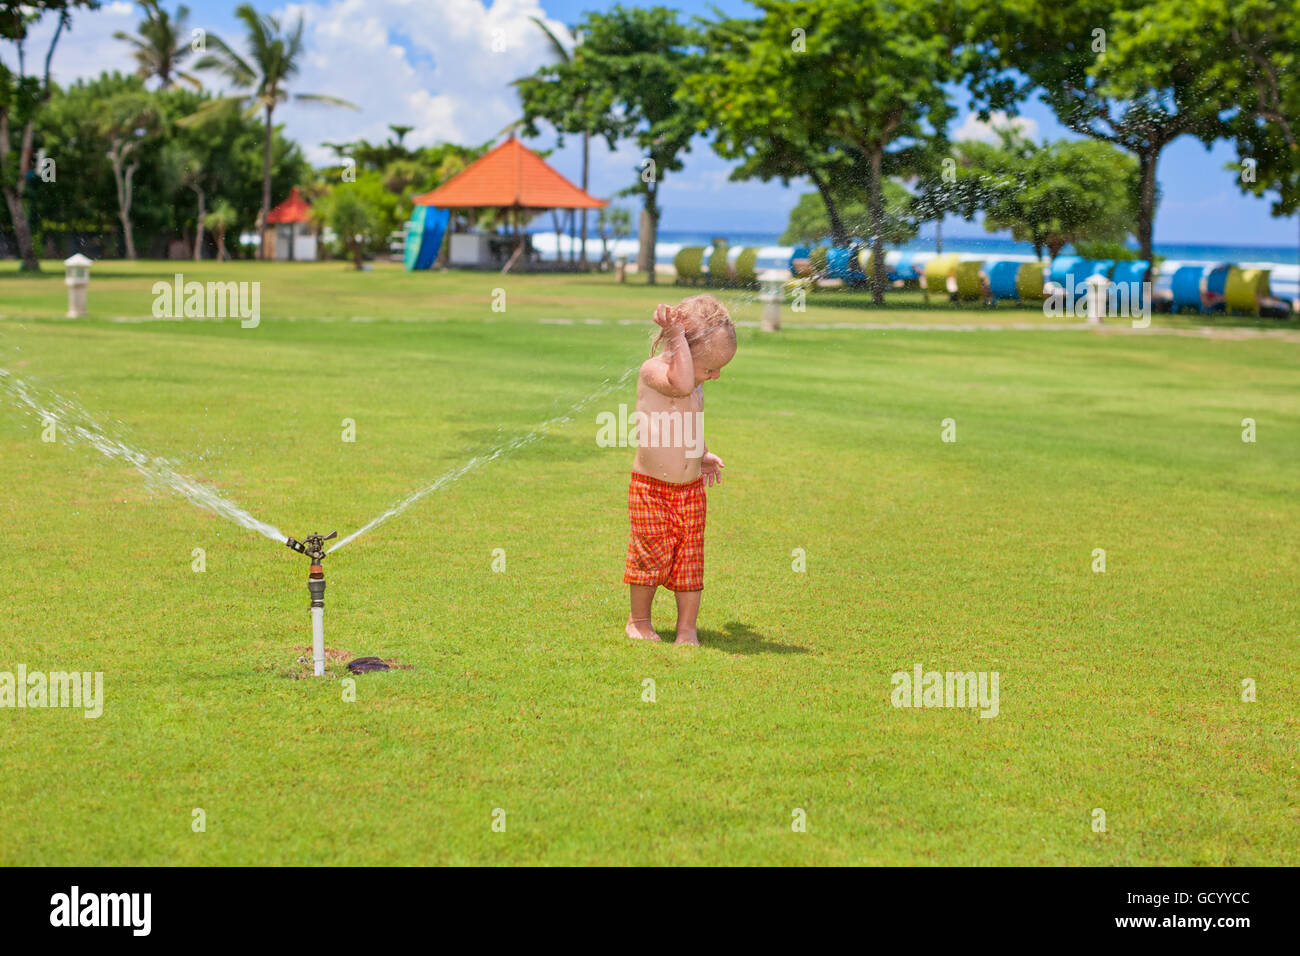 Happy baby boy play with sprinkler spray, swim and splash with fun under water drops on green grass lawn. Stock Photo